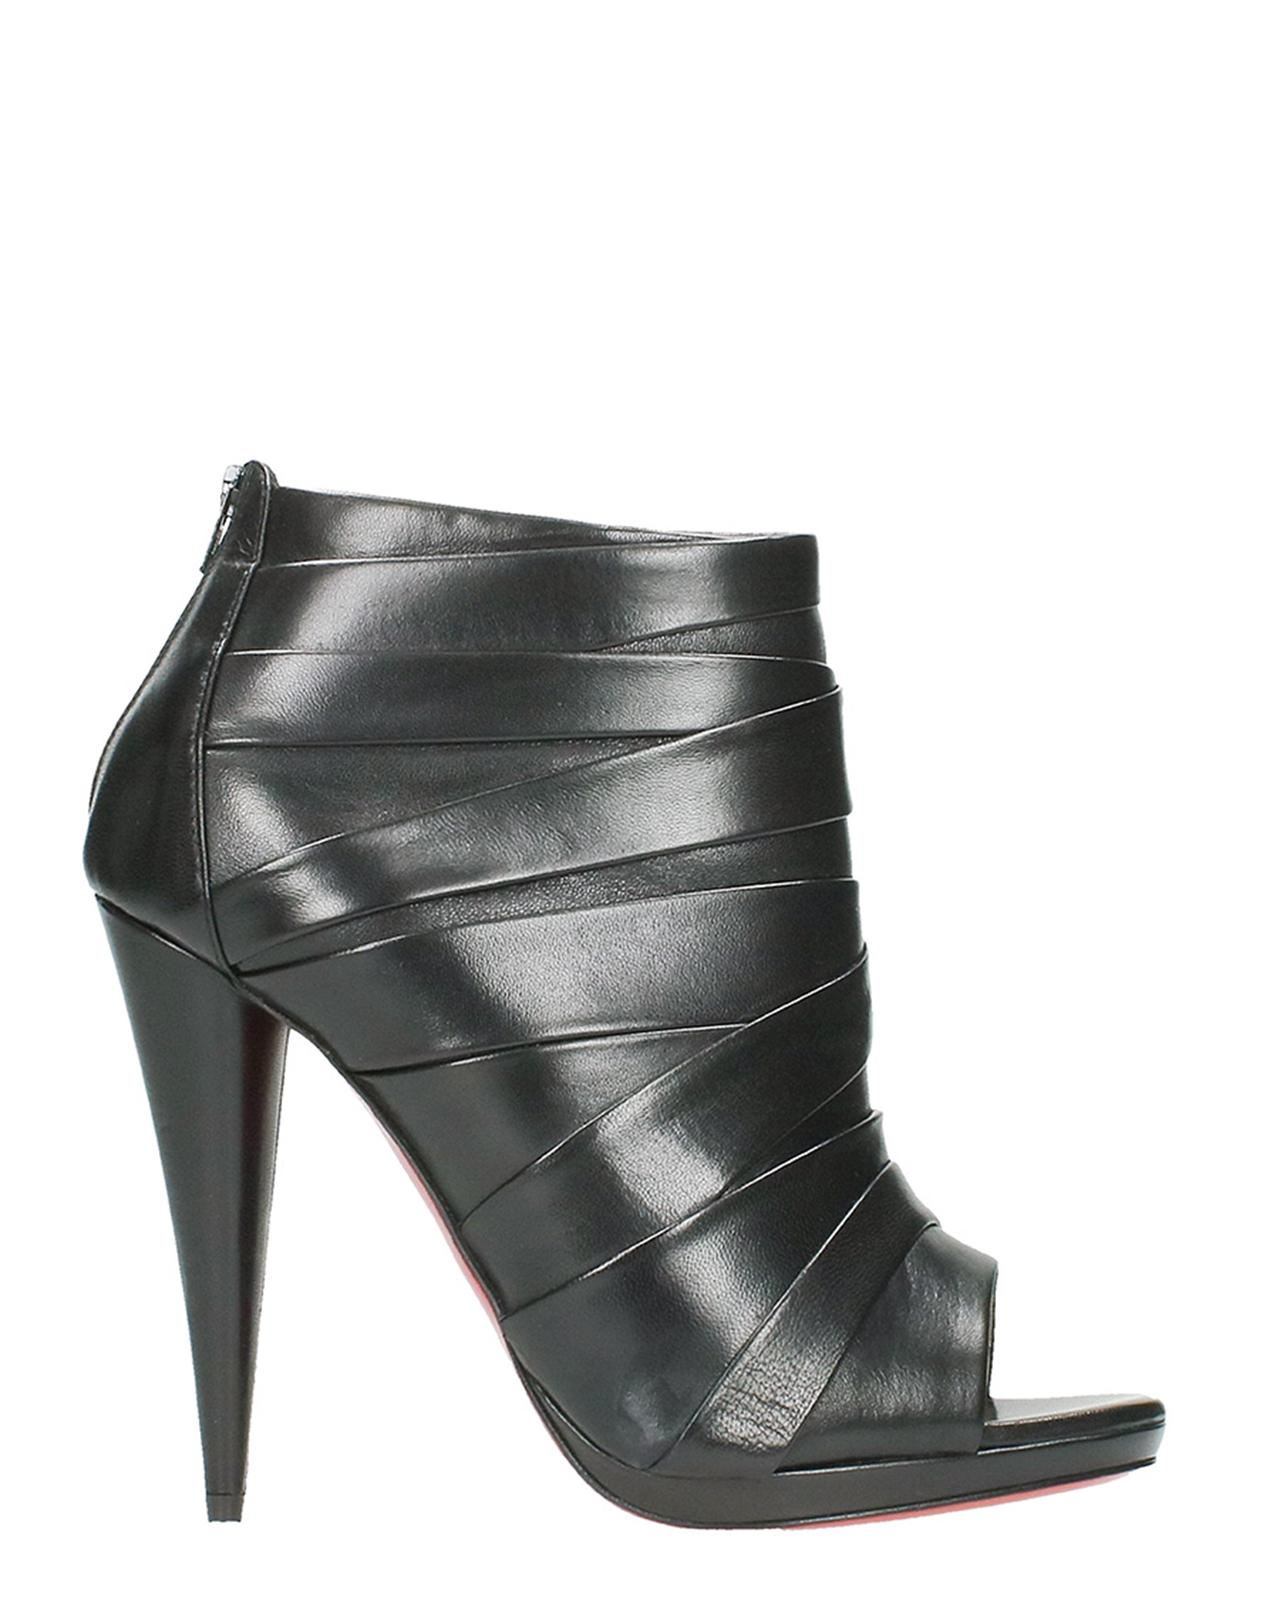 02e32822fb1c Christian Louboutin Boots + Booties - Up to 70% off at Tradesy